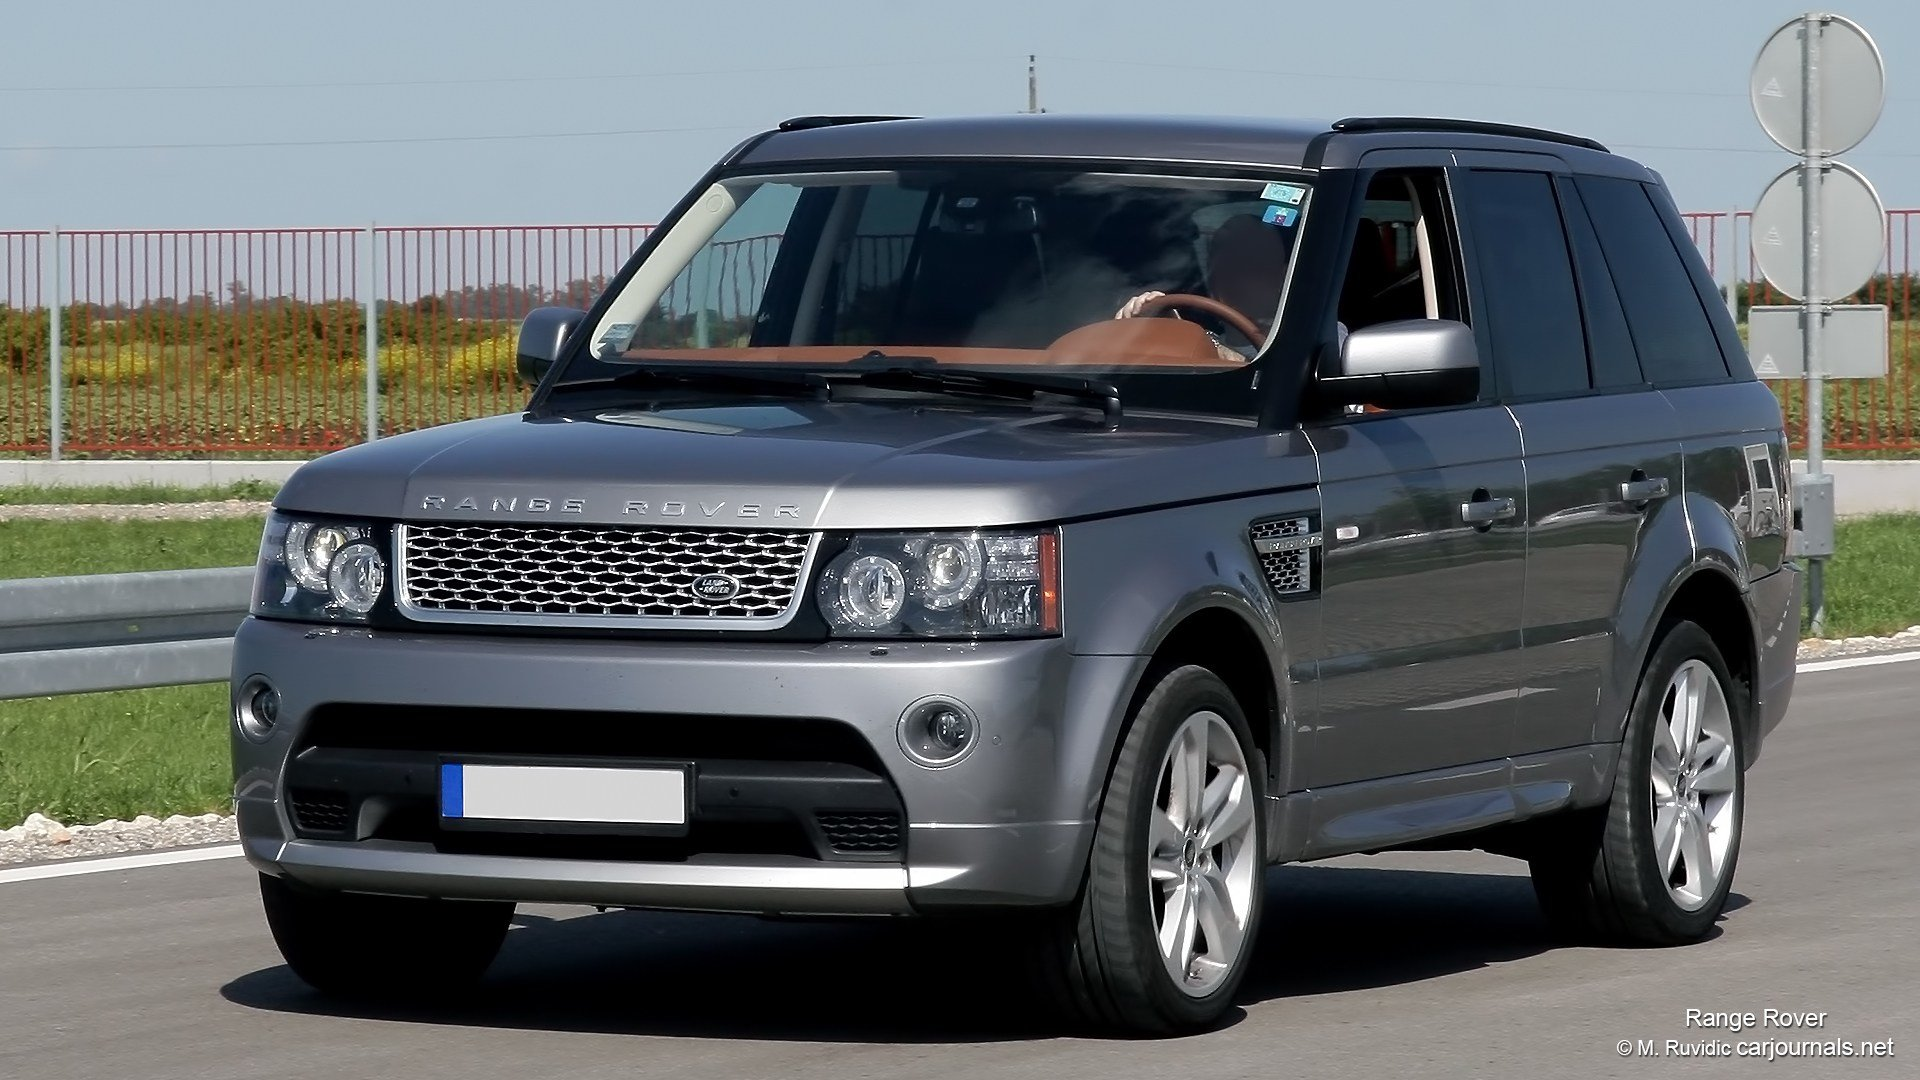 Latest Hd Car Wallpapers – Silver Range Rover – Car Journals Free Download